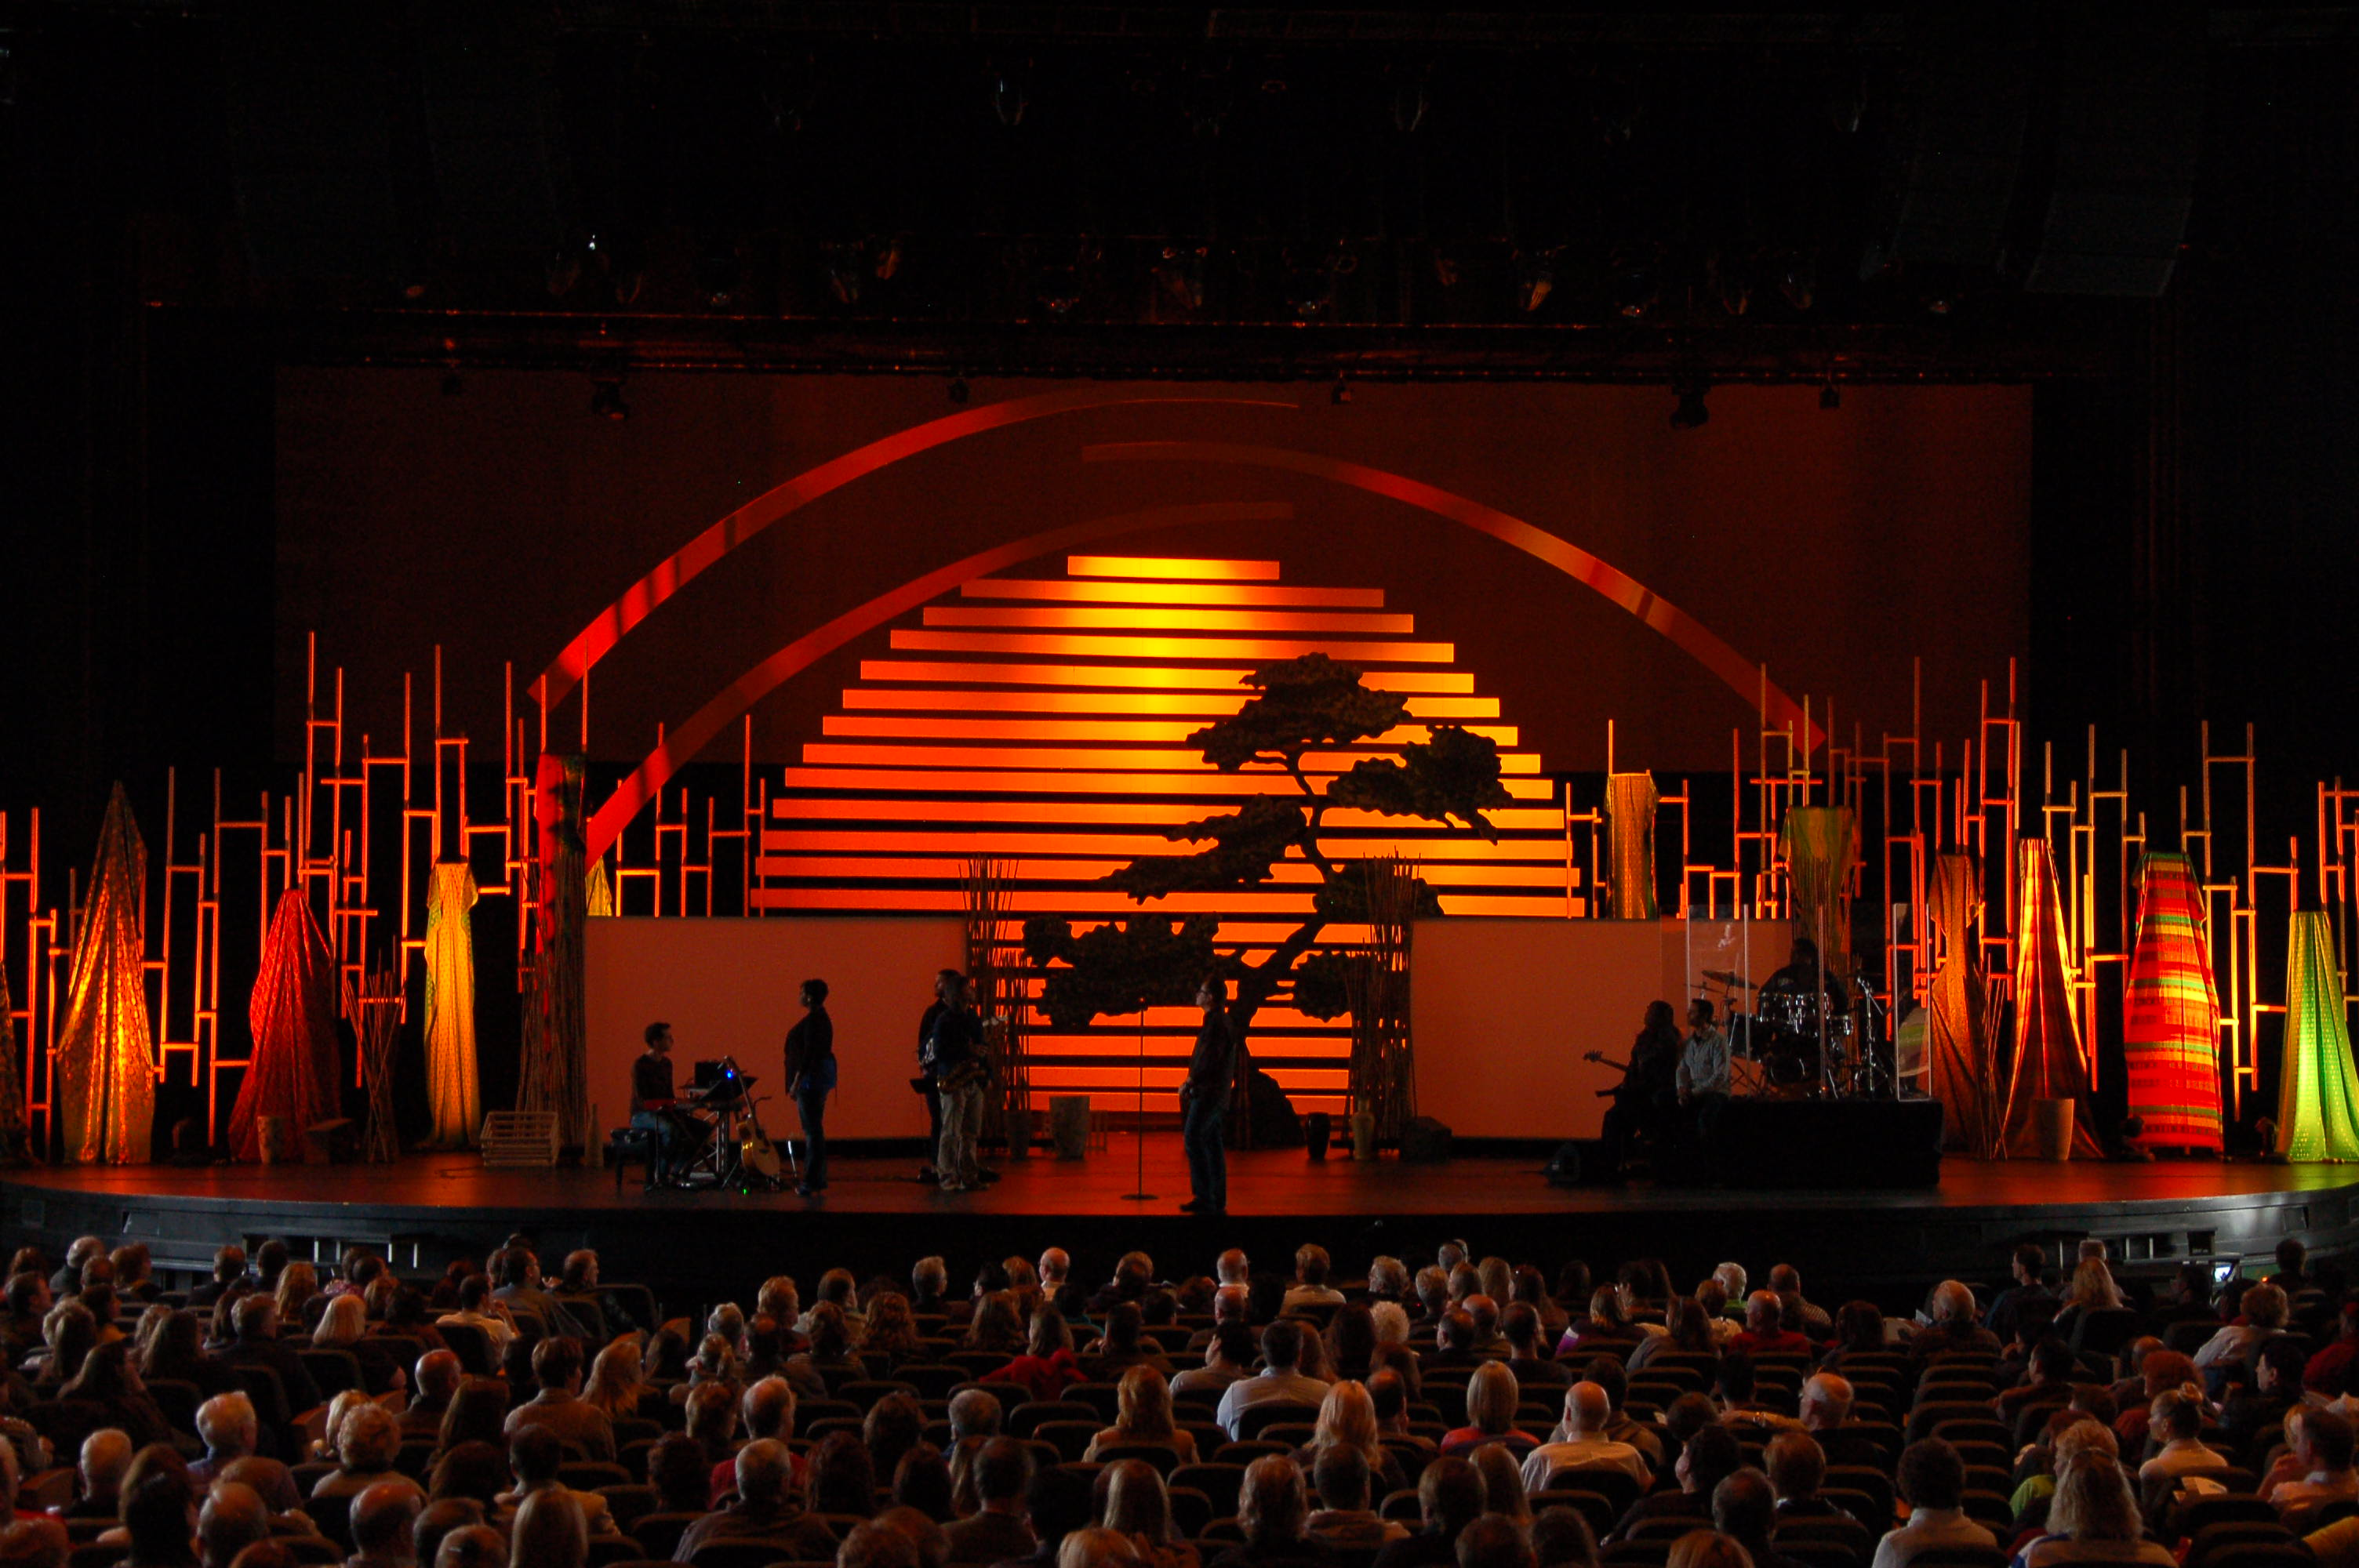 File:Glenn Davis 2012 COH Event Willow Creek Church scenic design.jpg